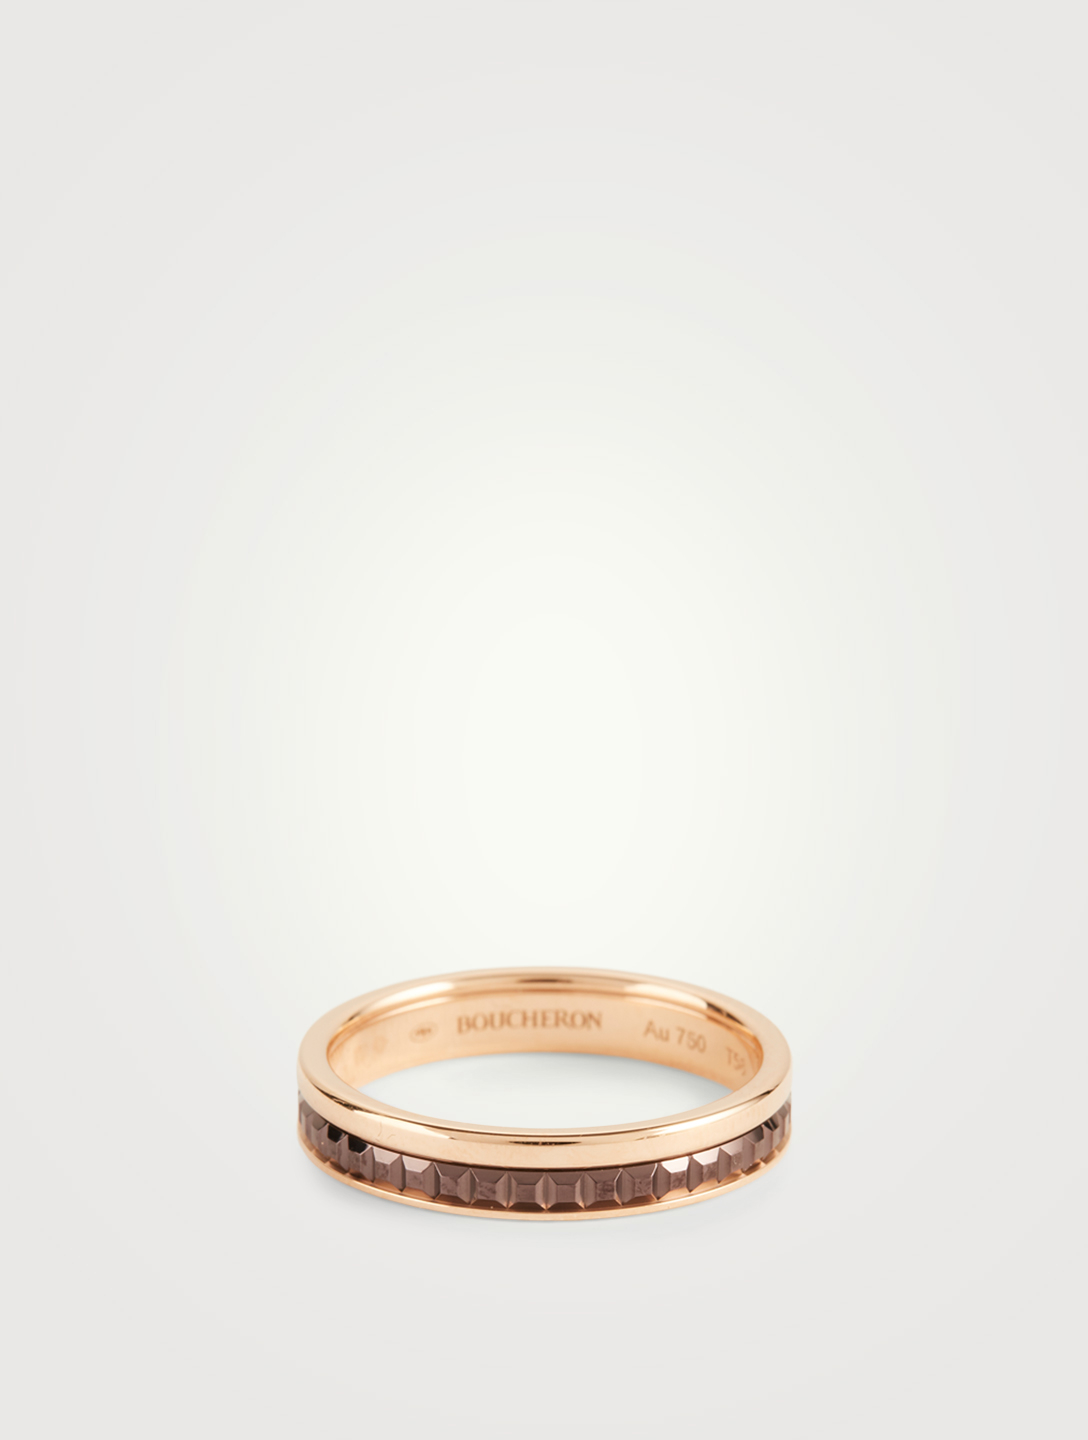 BOUCHERON Quatre Classique Rose Gold Wedding Band With Brown PVD Women's Metallic